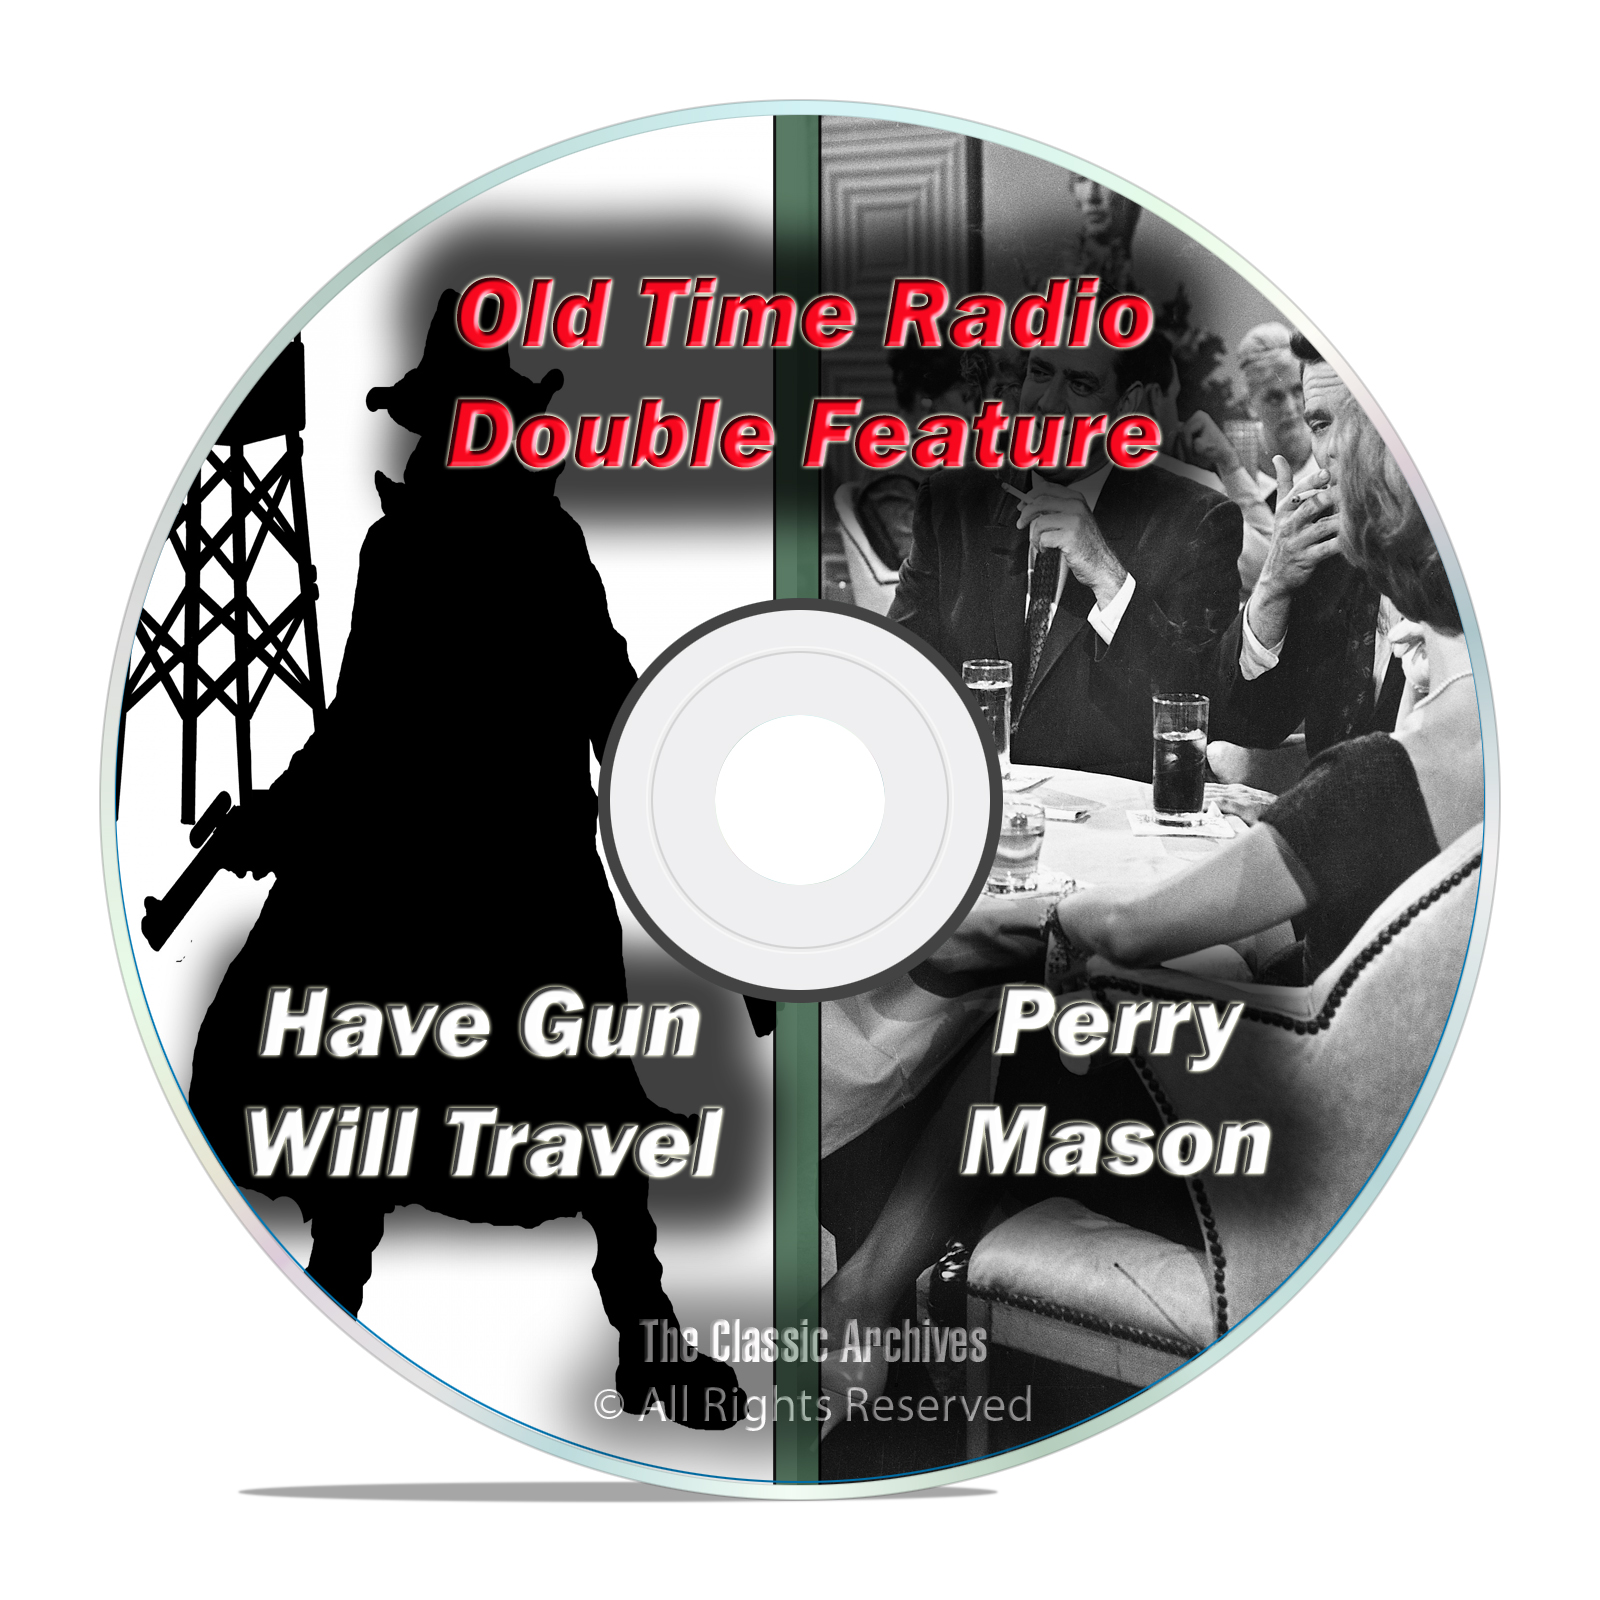 PERRY MASON + HAVE GUN WILL TRAVEL, 509 shows, FULL RUN, Old Time Radio DVD